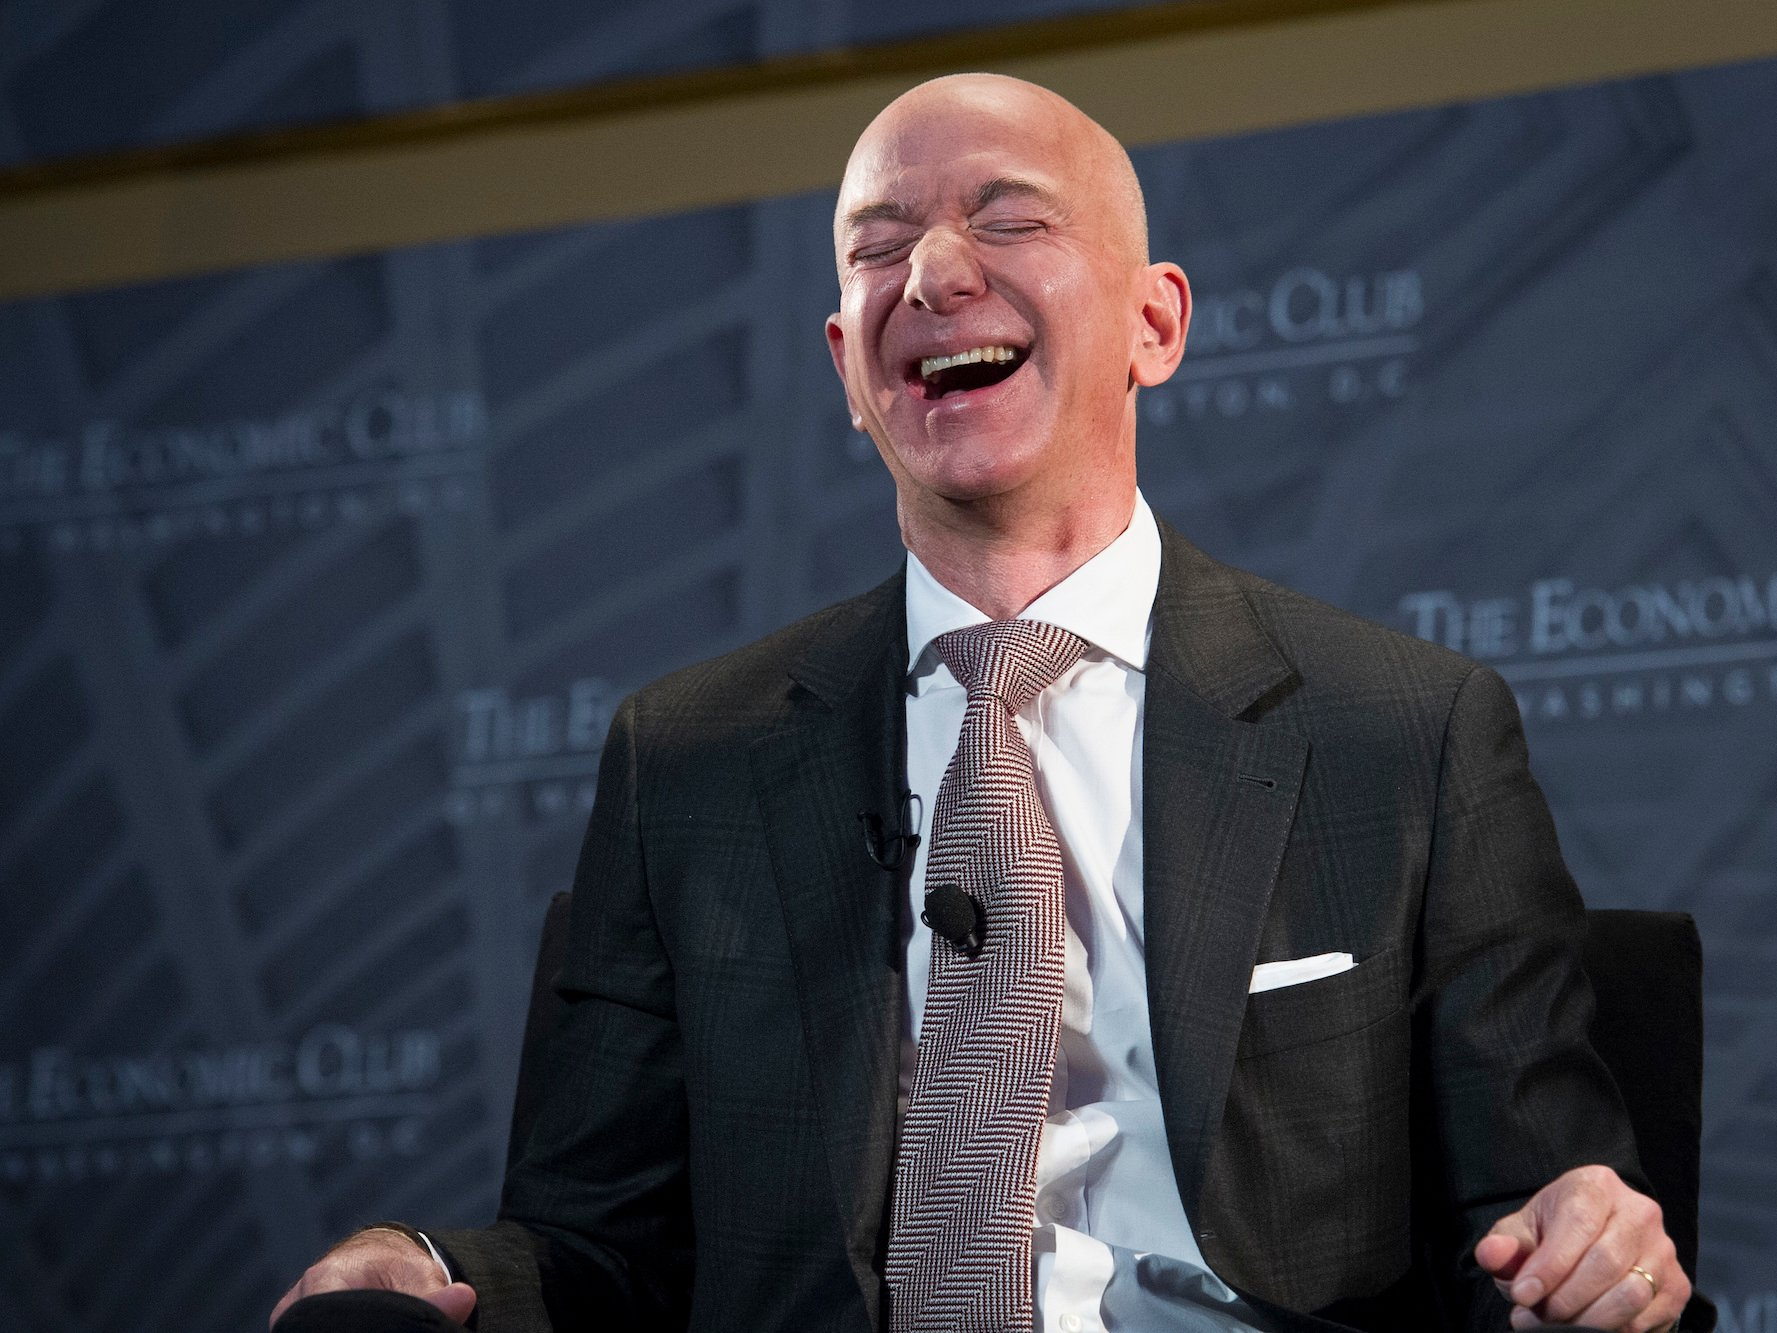 The Dispatch! Prime Day and the God-King Bezos!